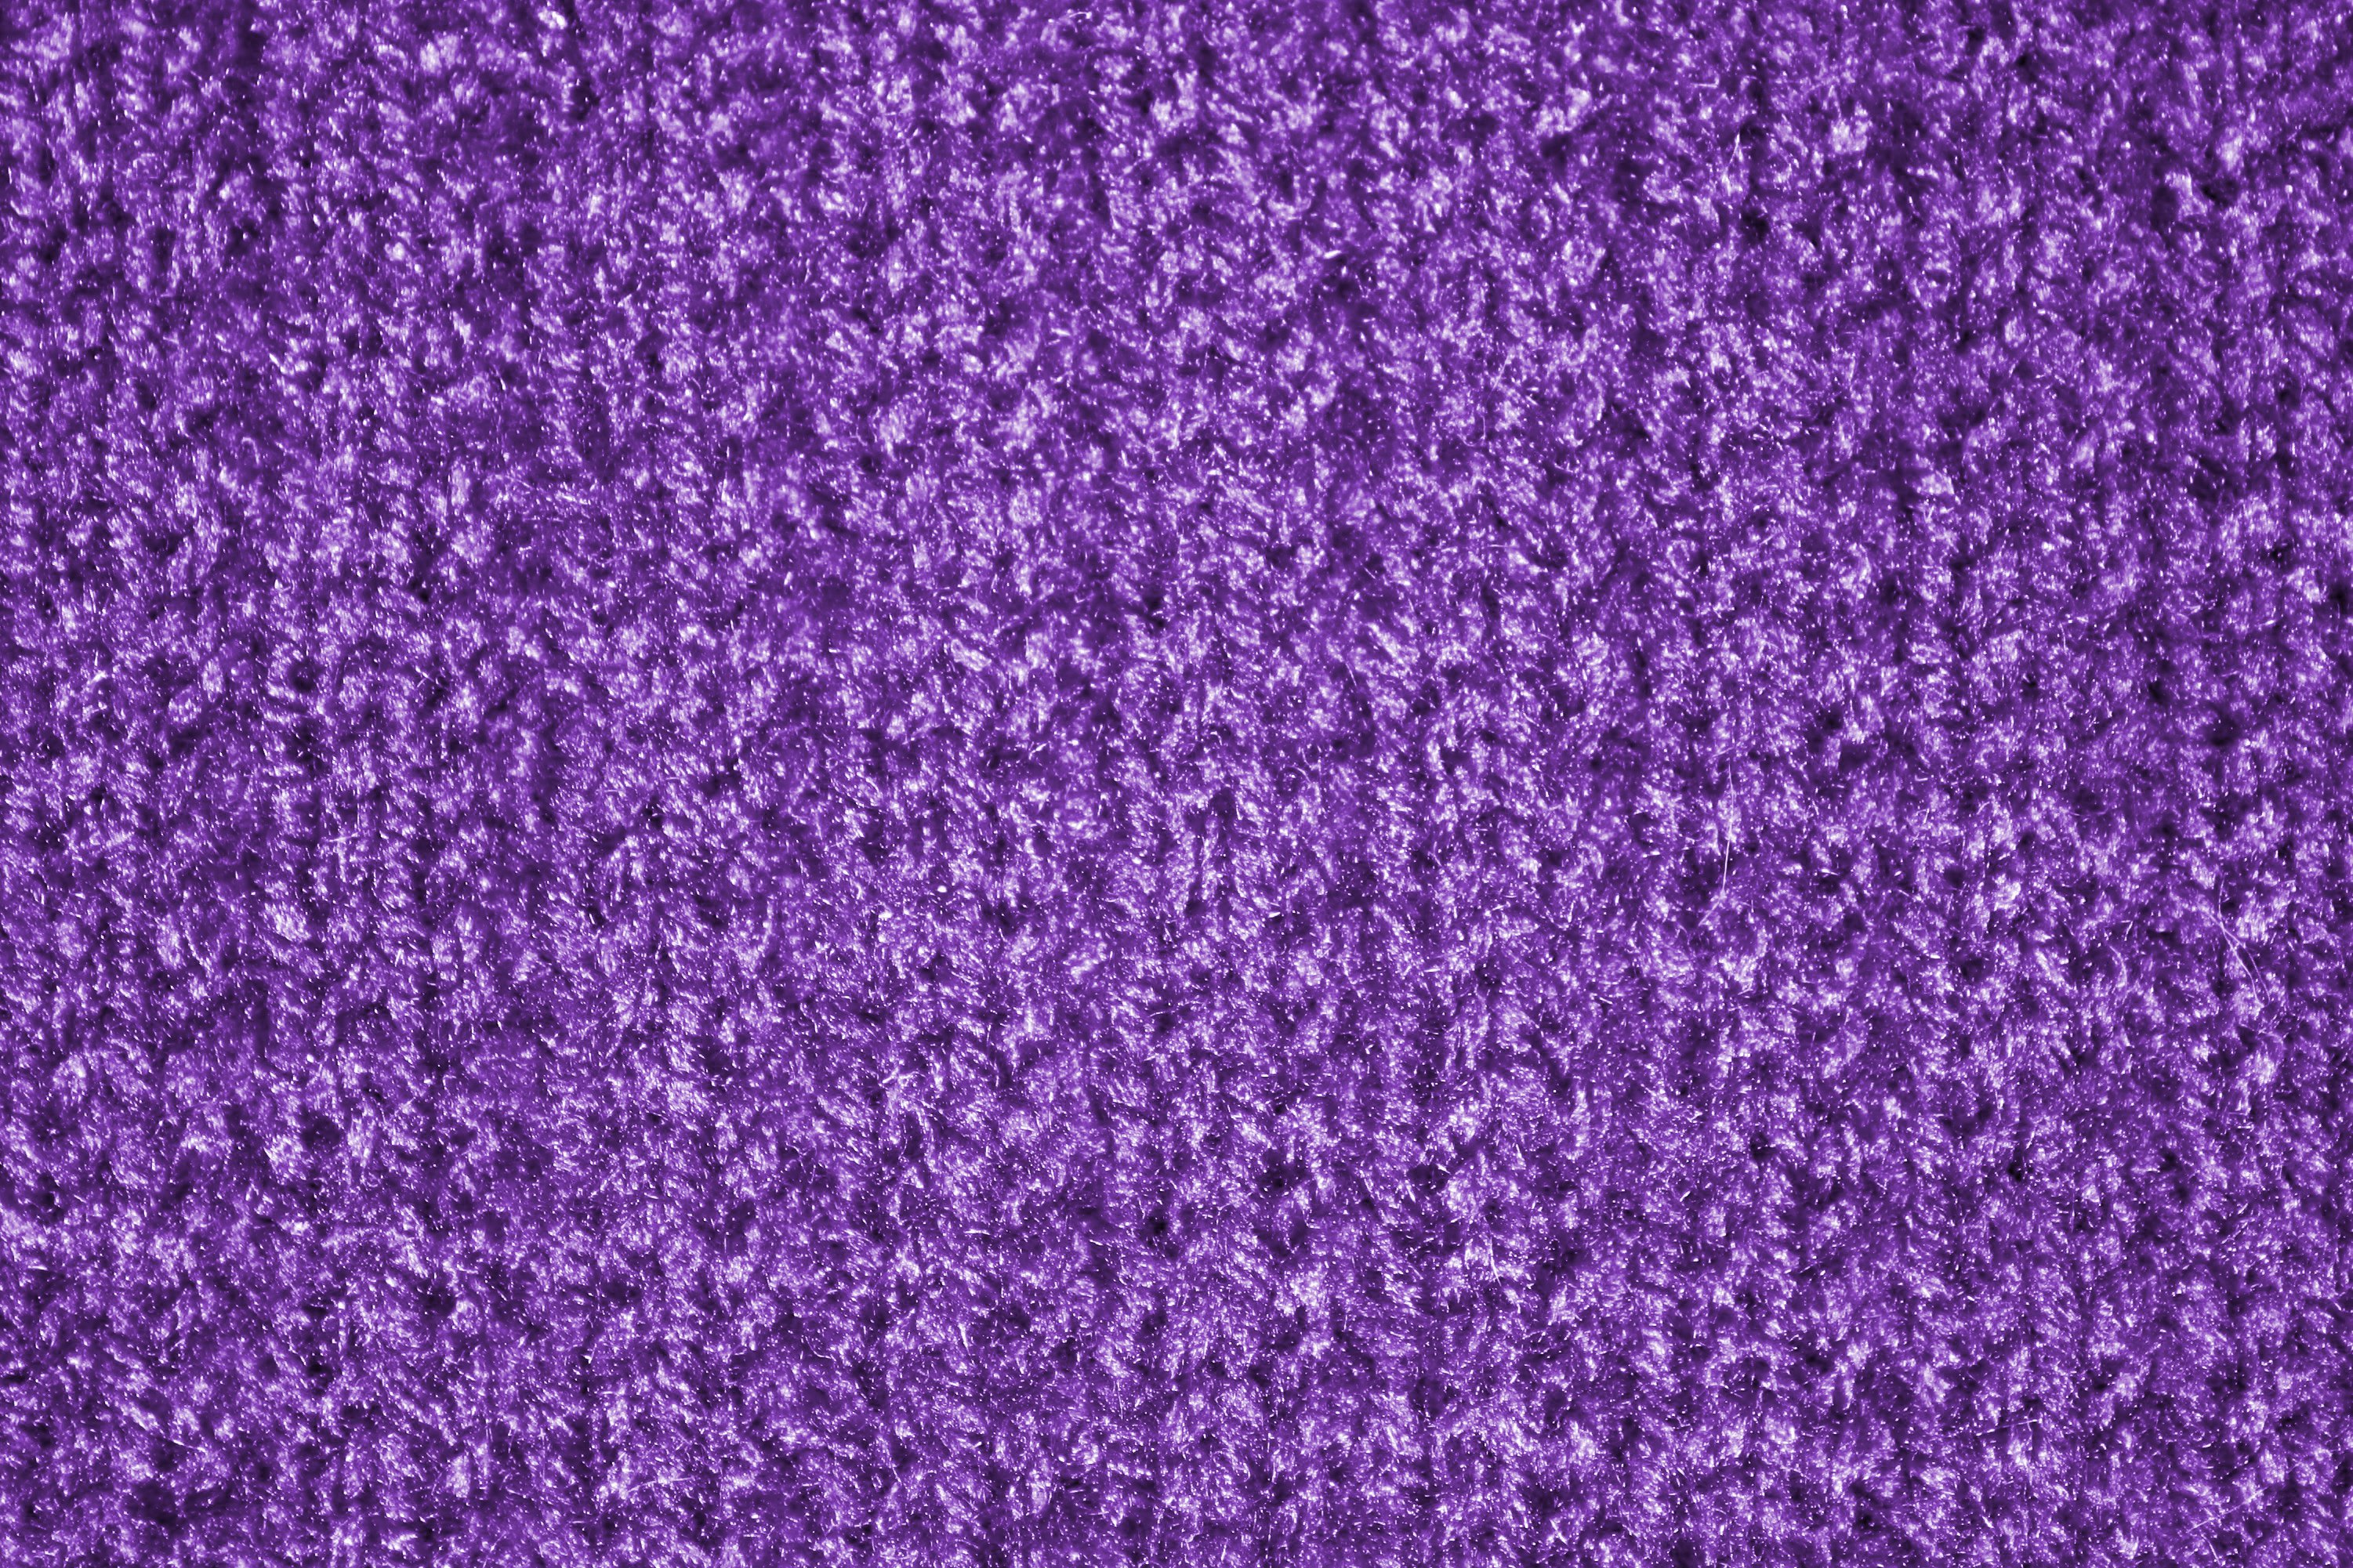 Purple knitted wool texture background image